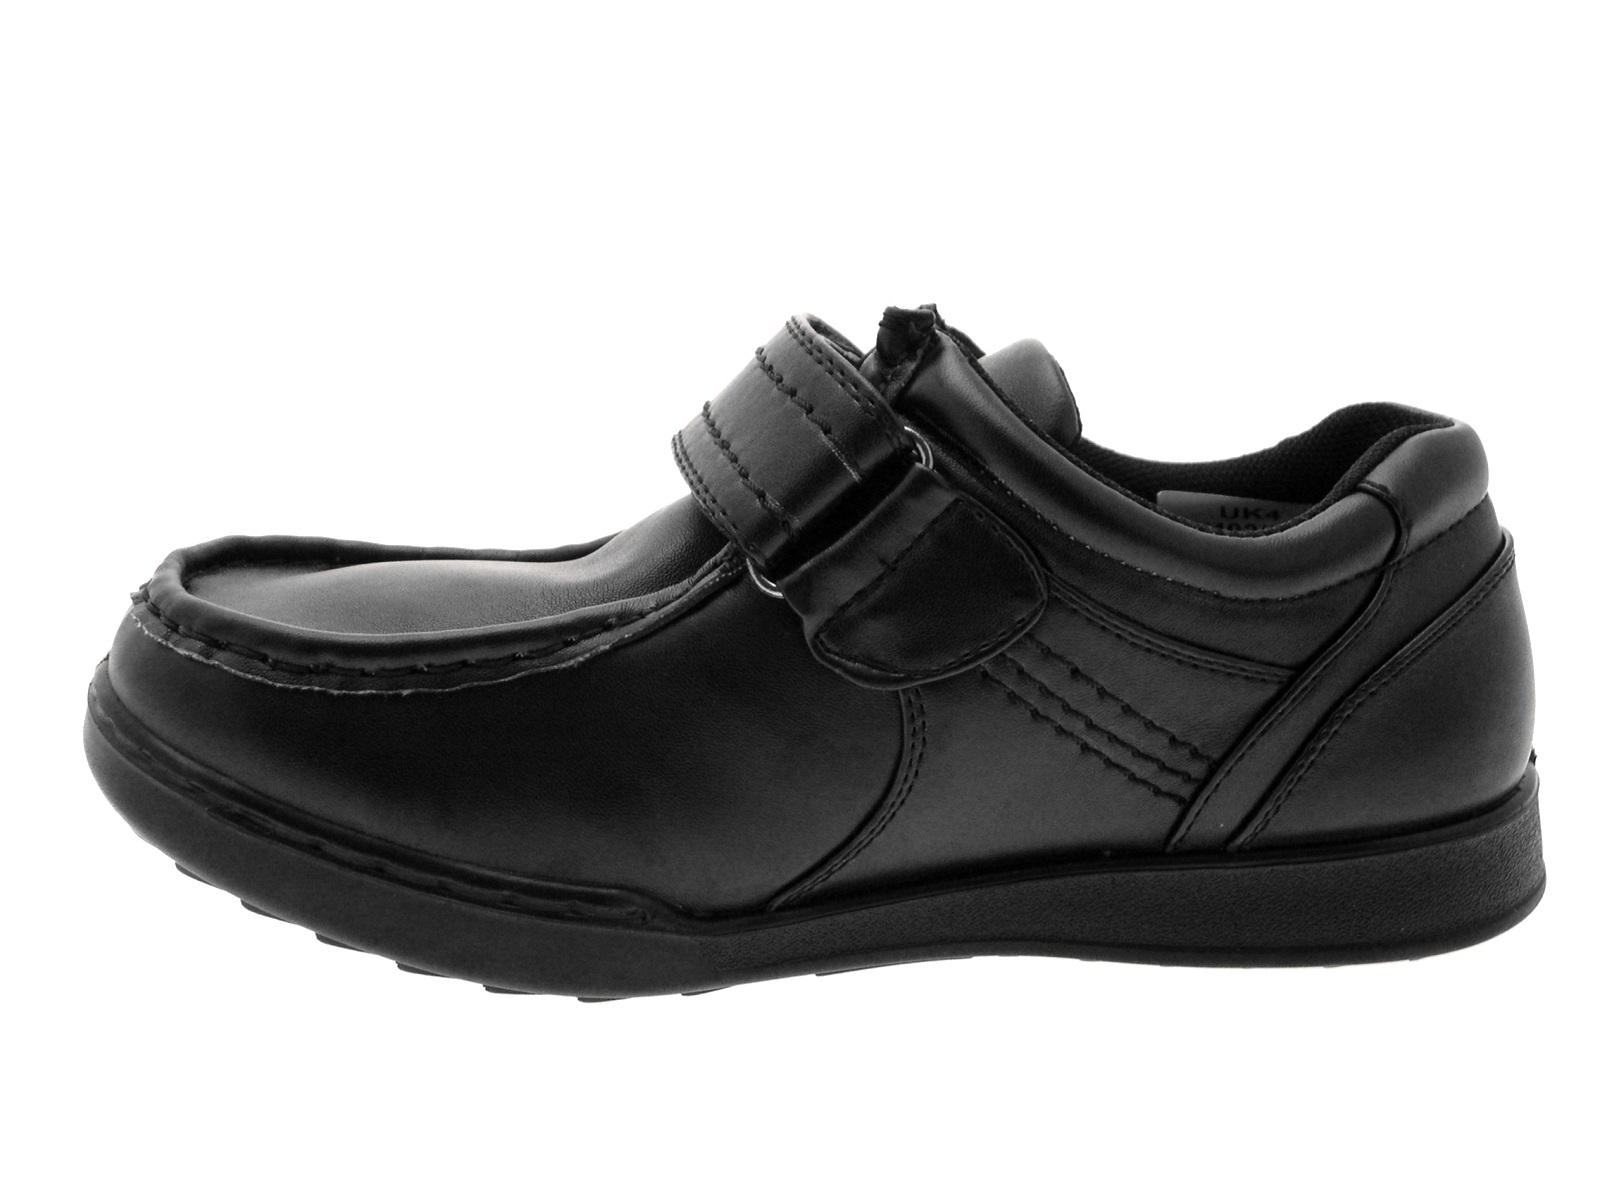 Black Kids Shoes Sale: Save Up to 60% Off! Shop litastmaterlo.gq's huge selection of Black Shoes for Kids - Over 1, styles available. FREE Shipping & Exchanges, and a % price guarantee!